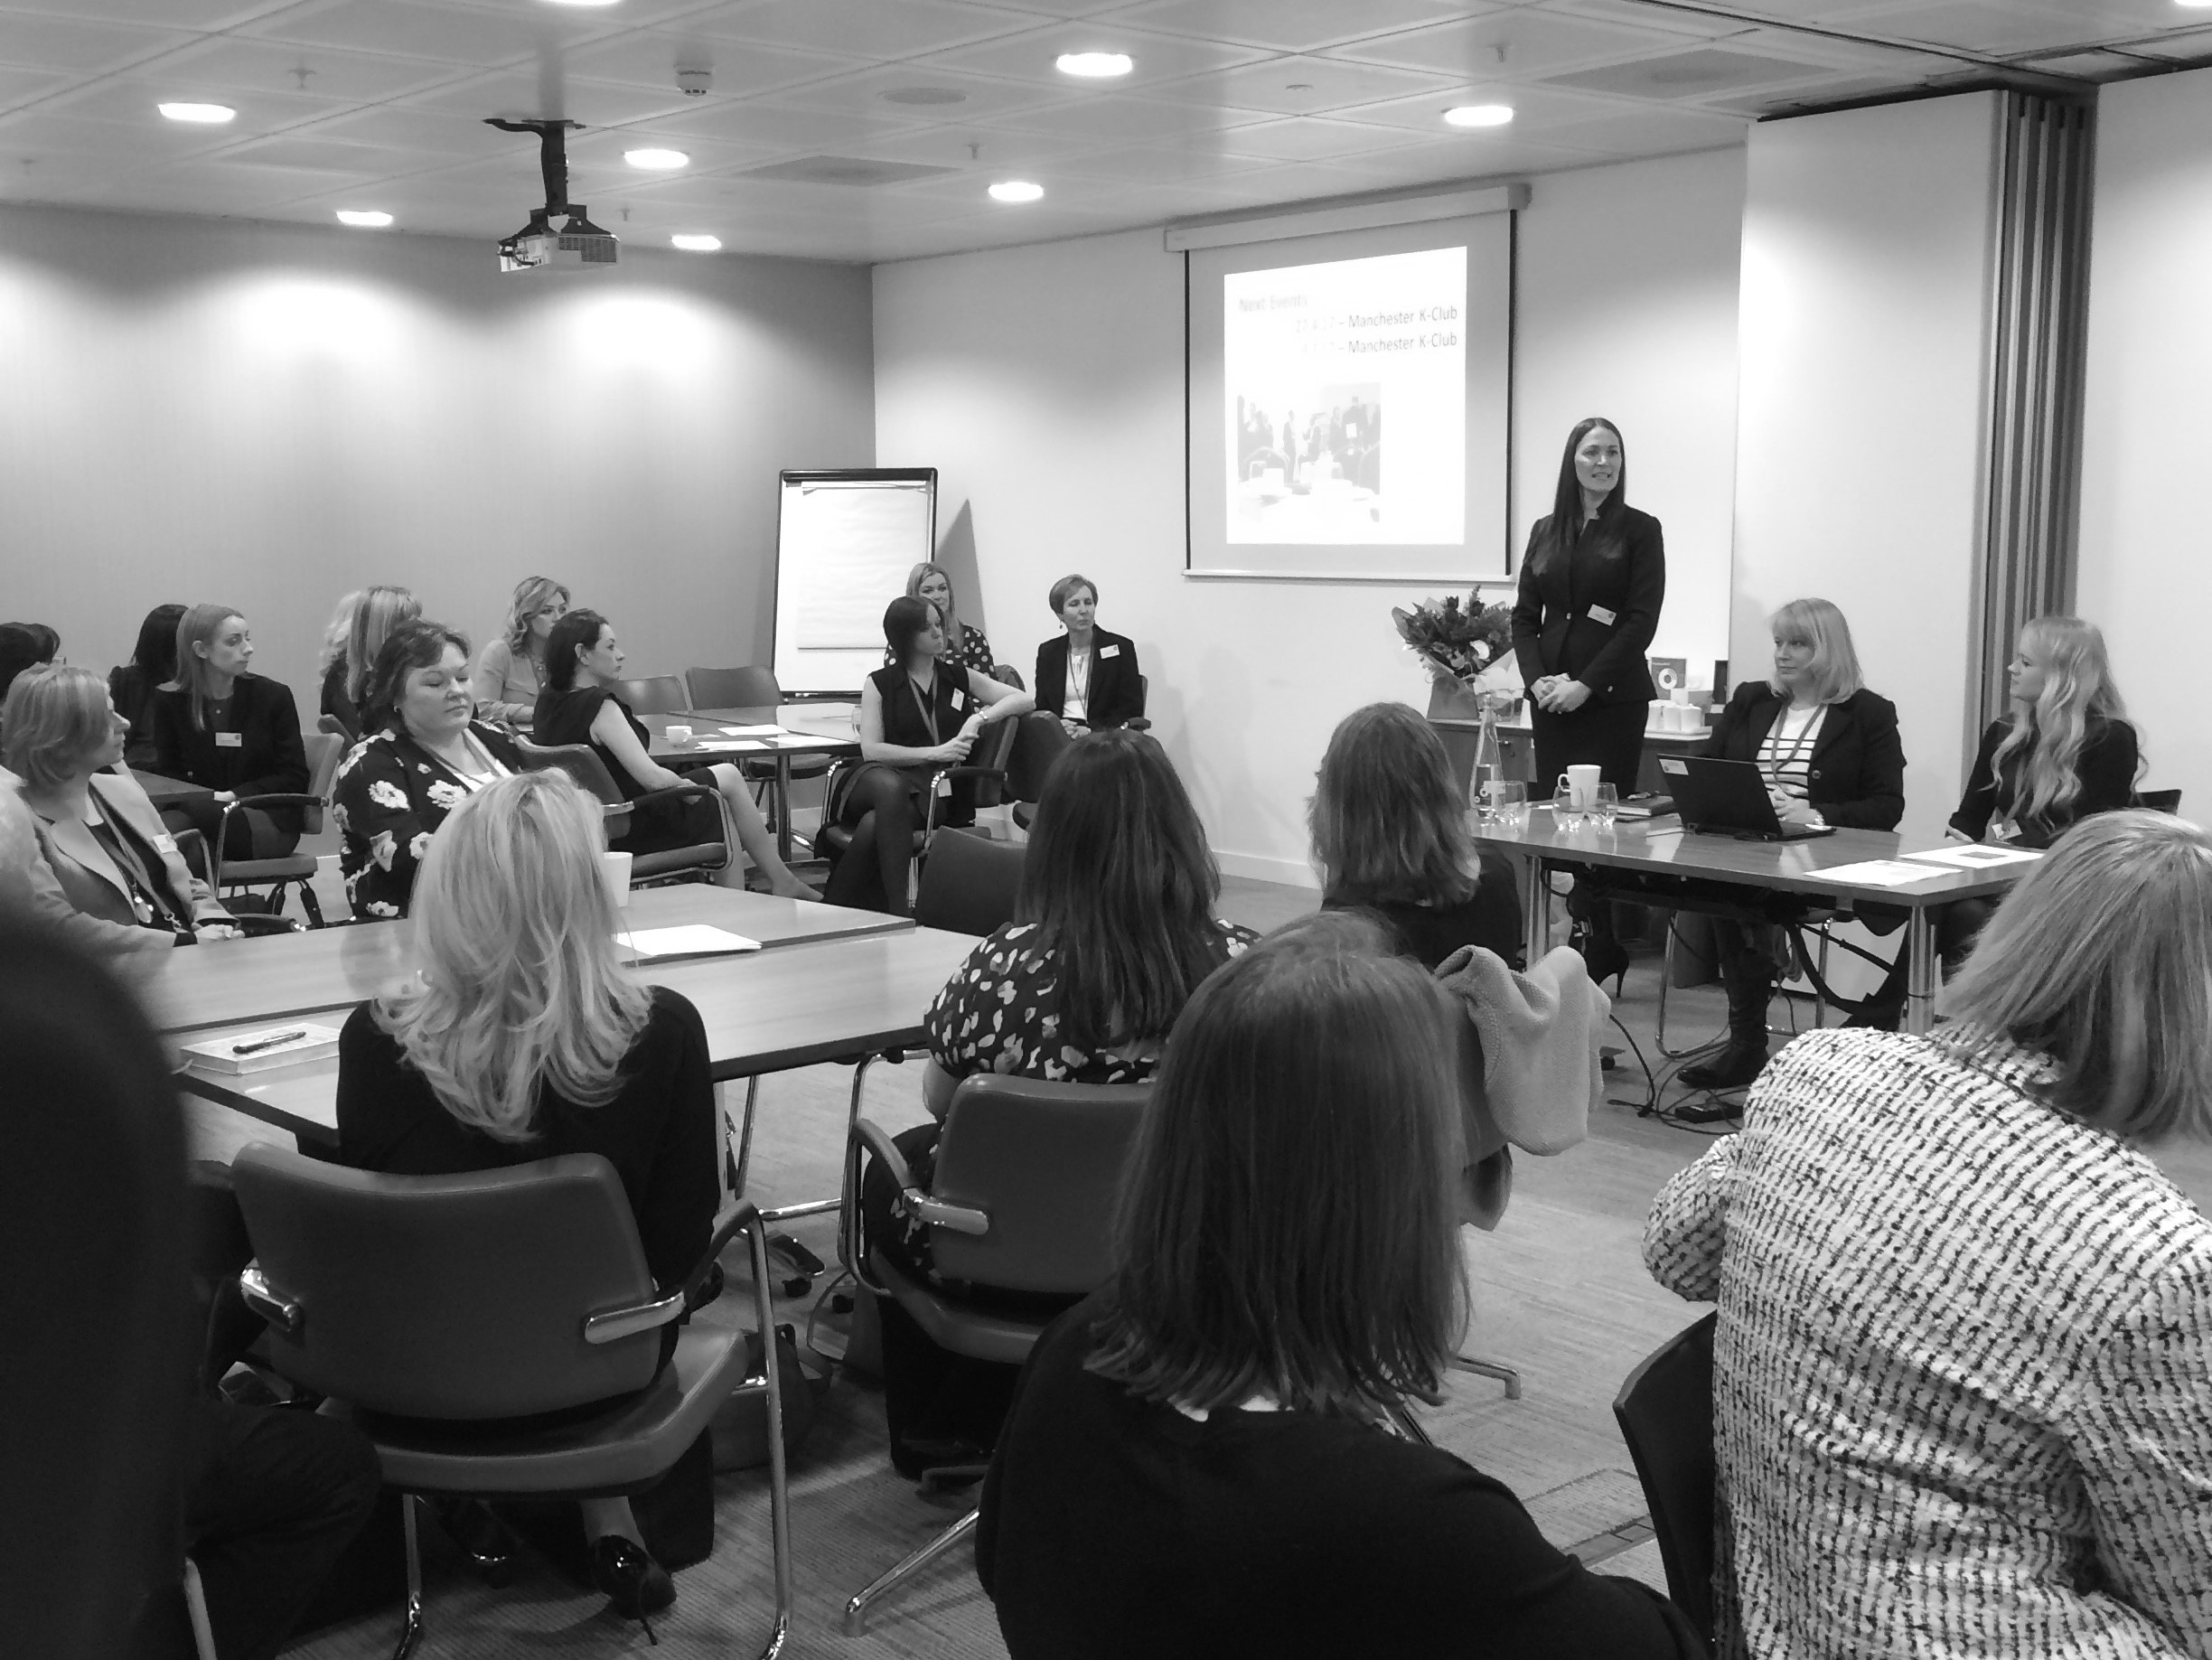 K-Club Women's Lunch 7.3.17 hosted by DWF